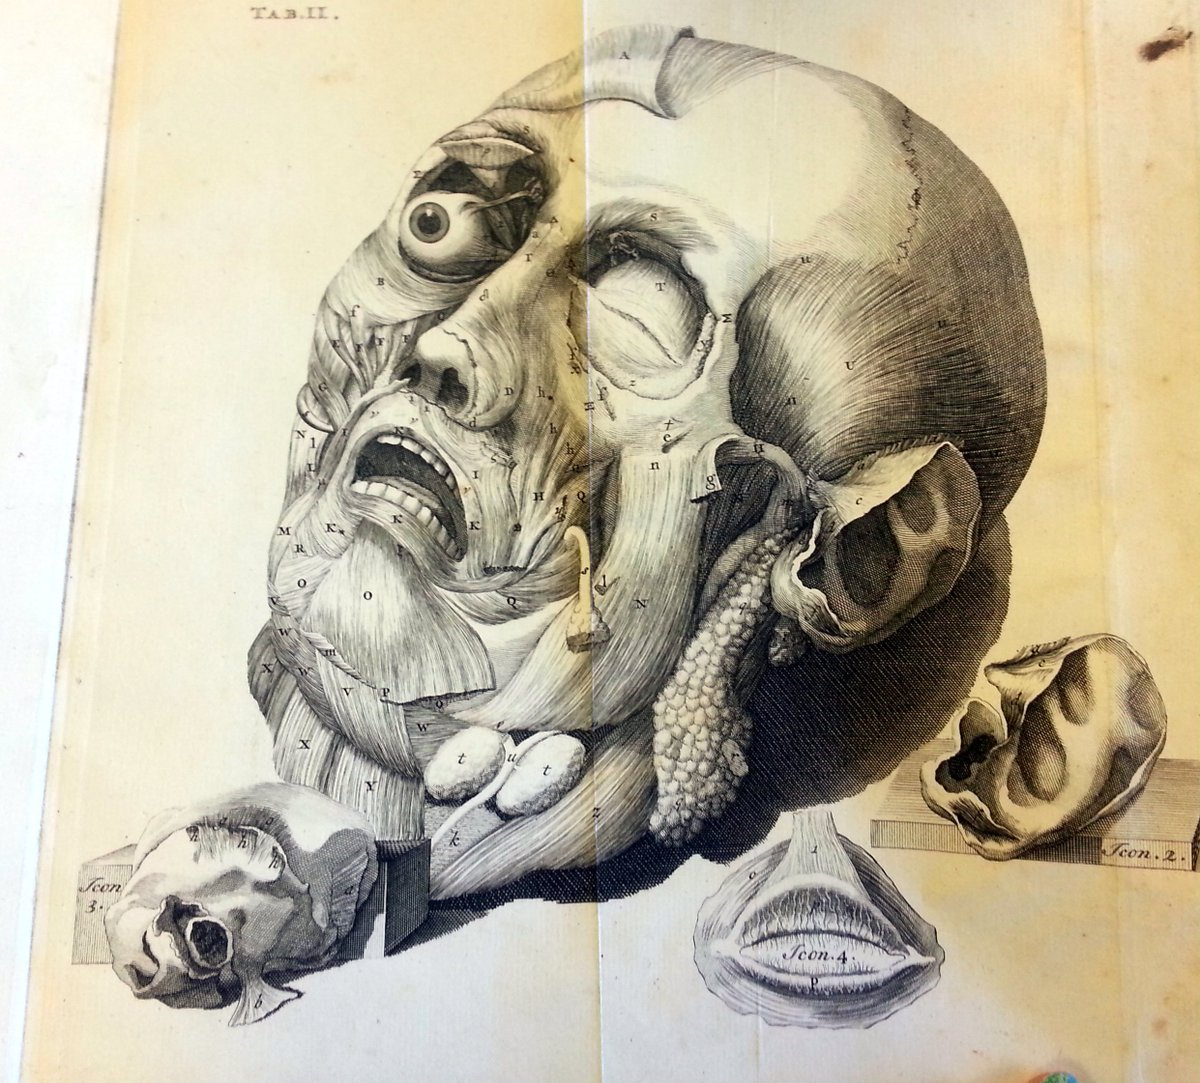 Umich Spcoll On Twitter How To Teach Anatomy In 1743 Give